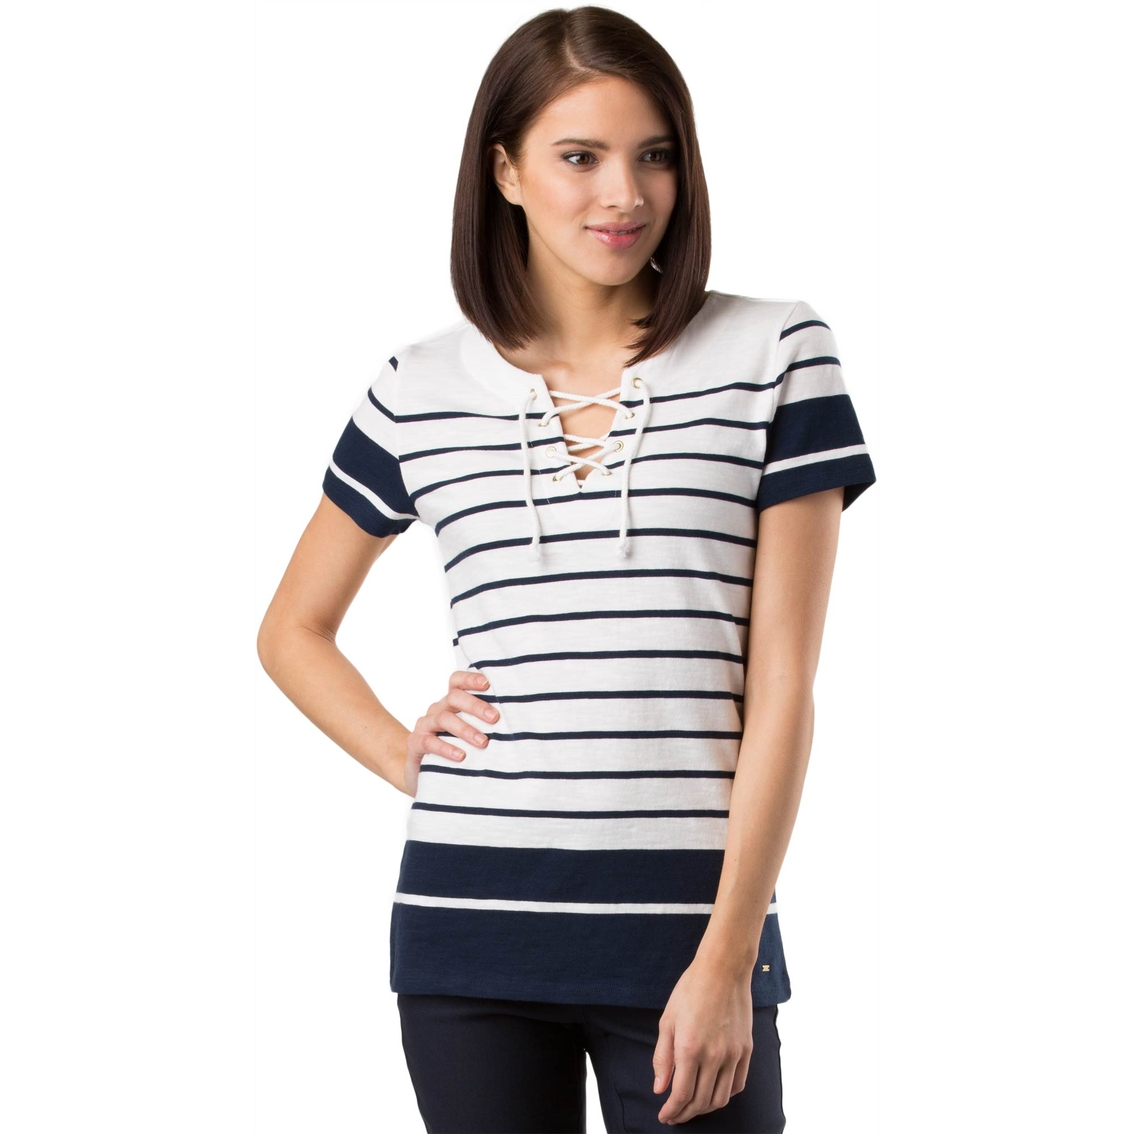 Tommy Hilfiger Pascale Lace Front Top Casual Shirts Apparel